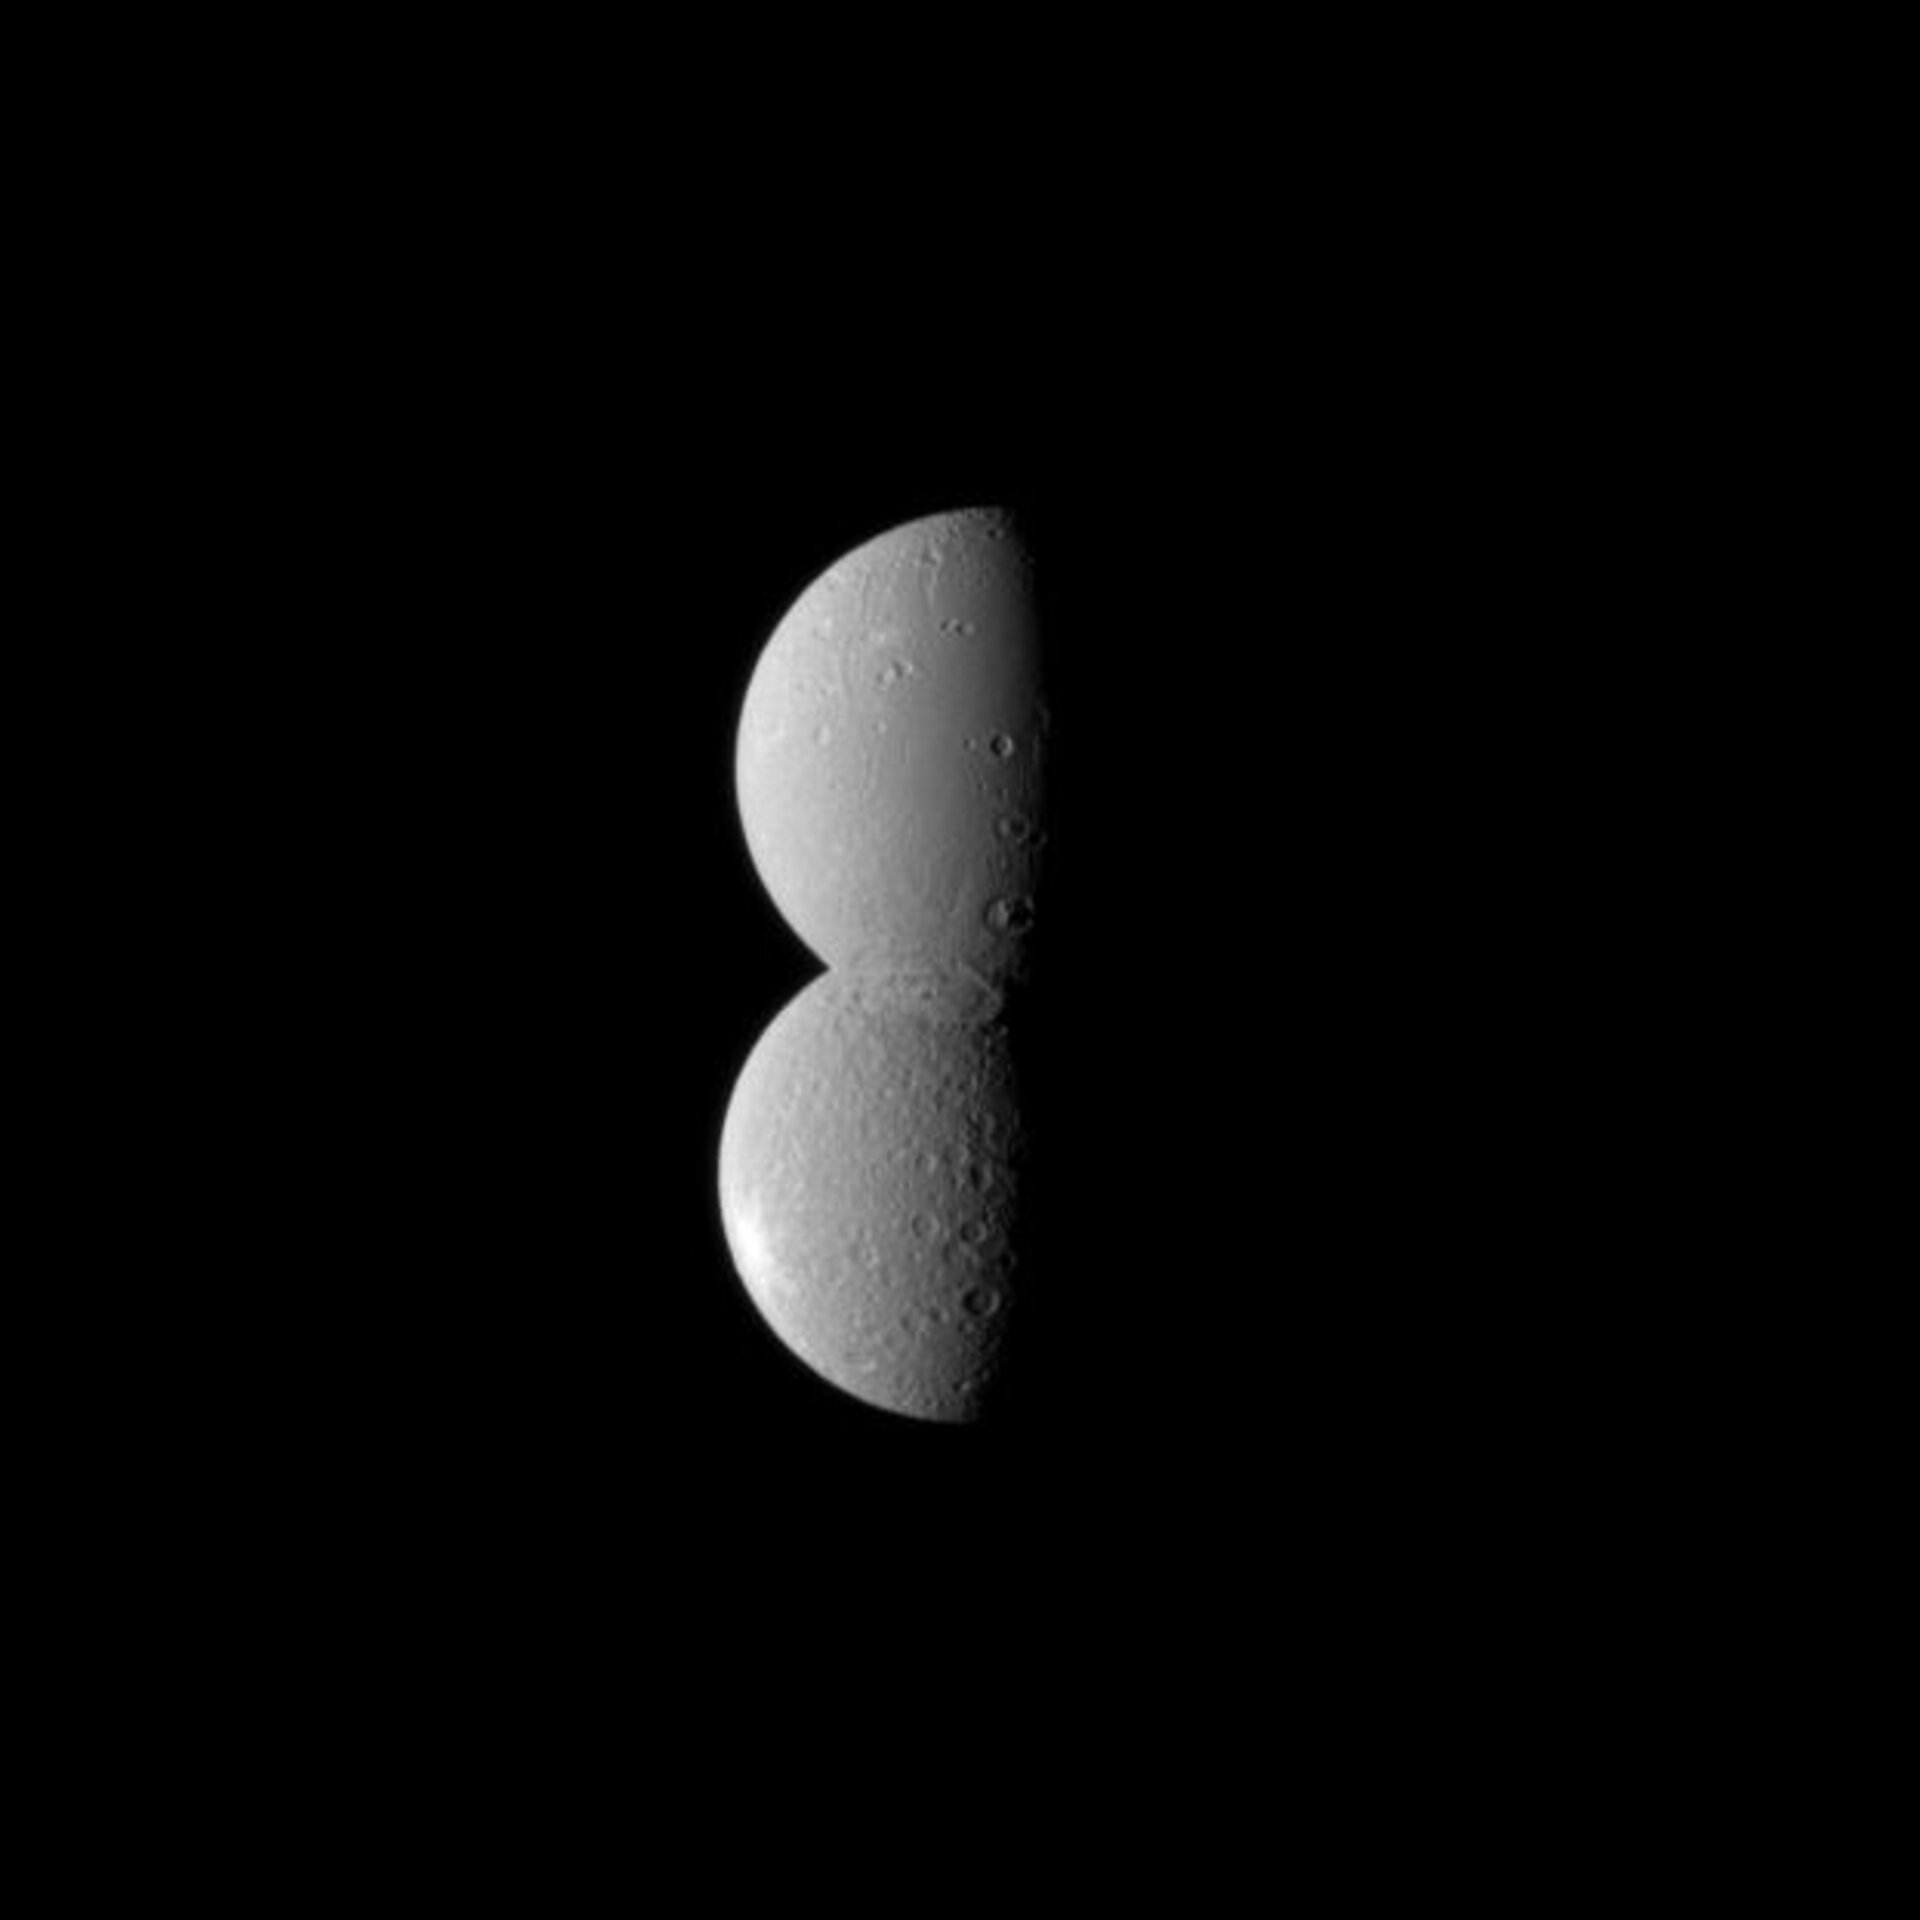 Dione and Rhea appear as one